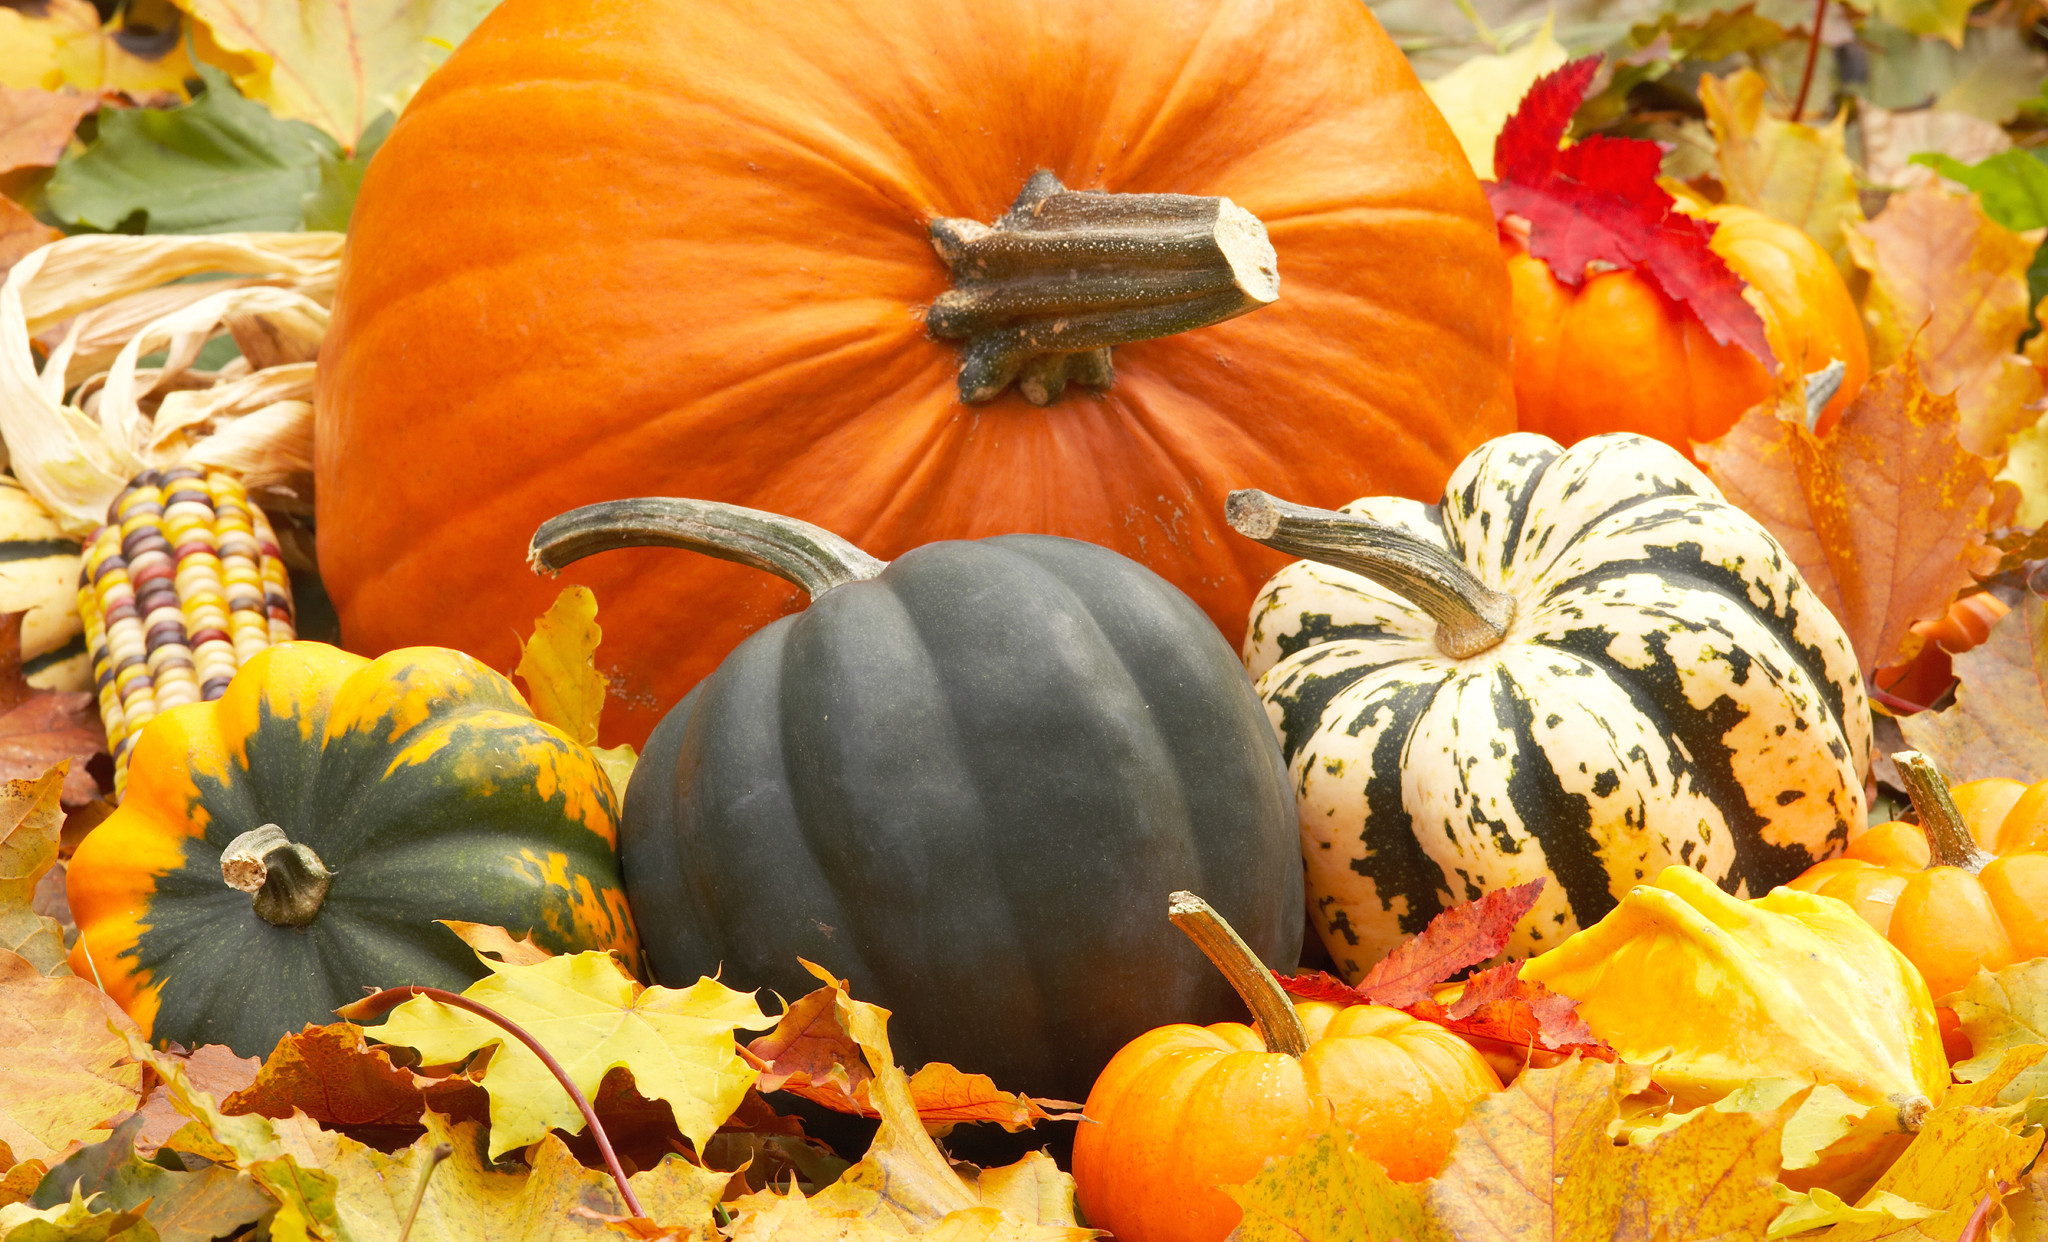 Gallery For > Fall Leaves And Pumpkins Wallpaper